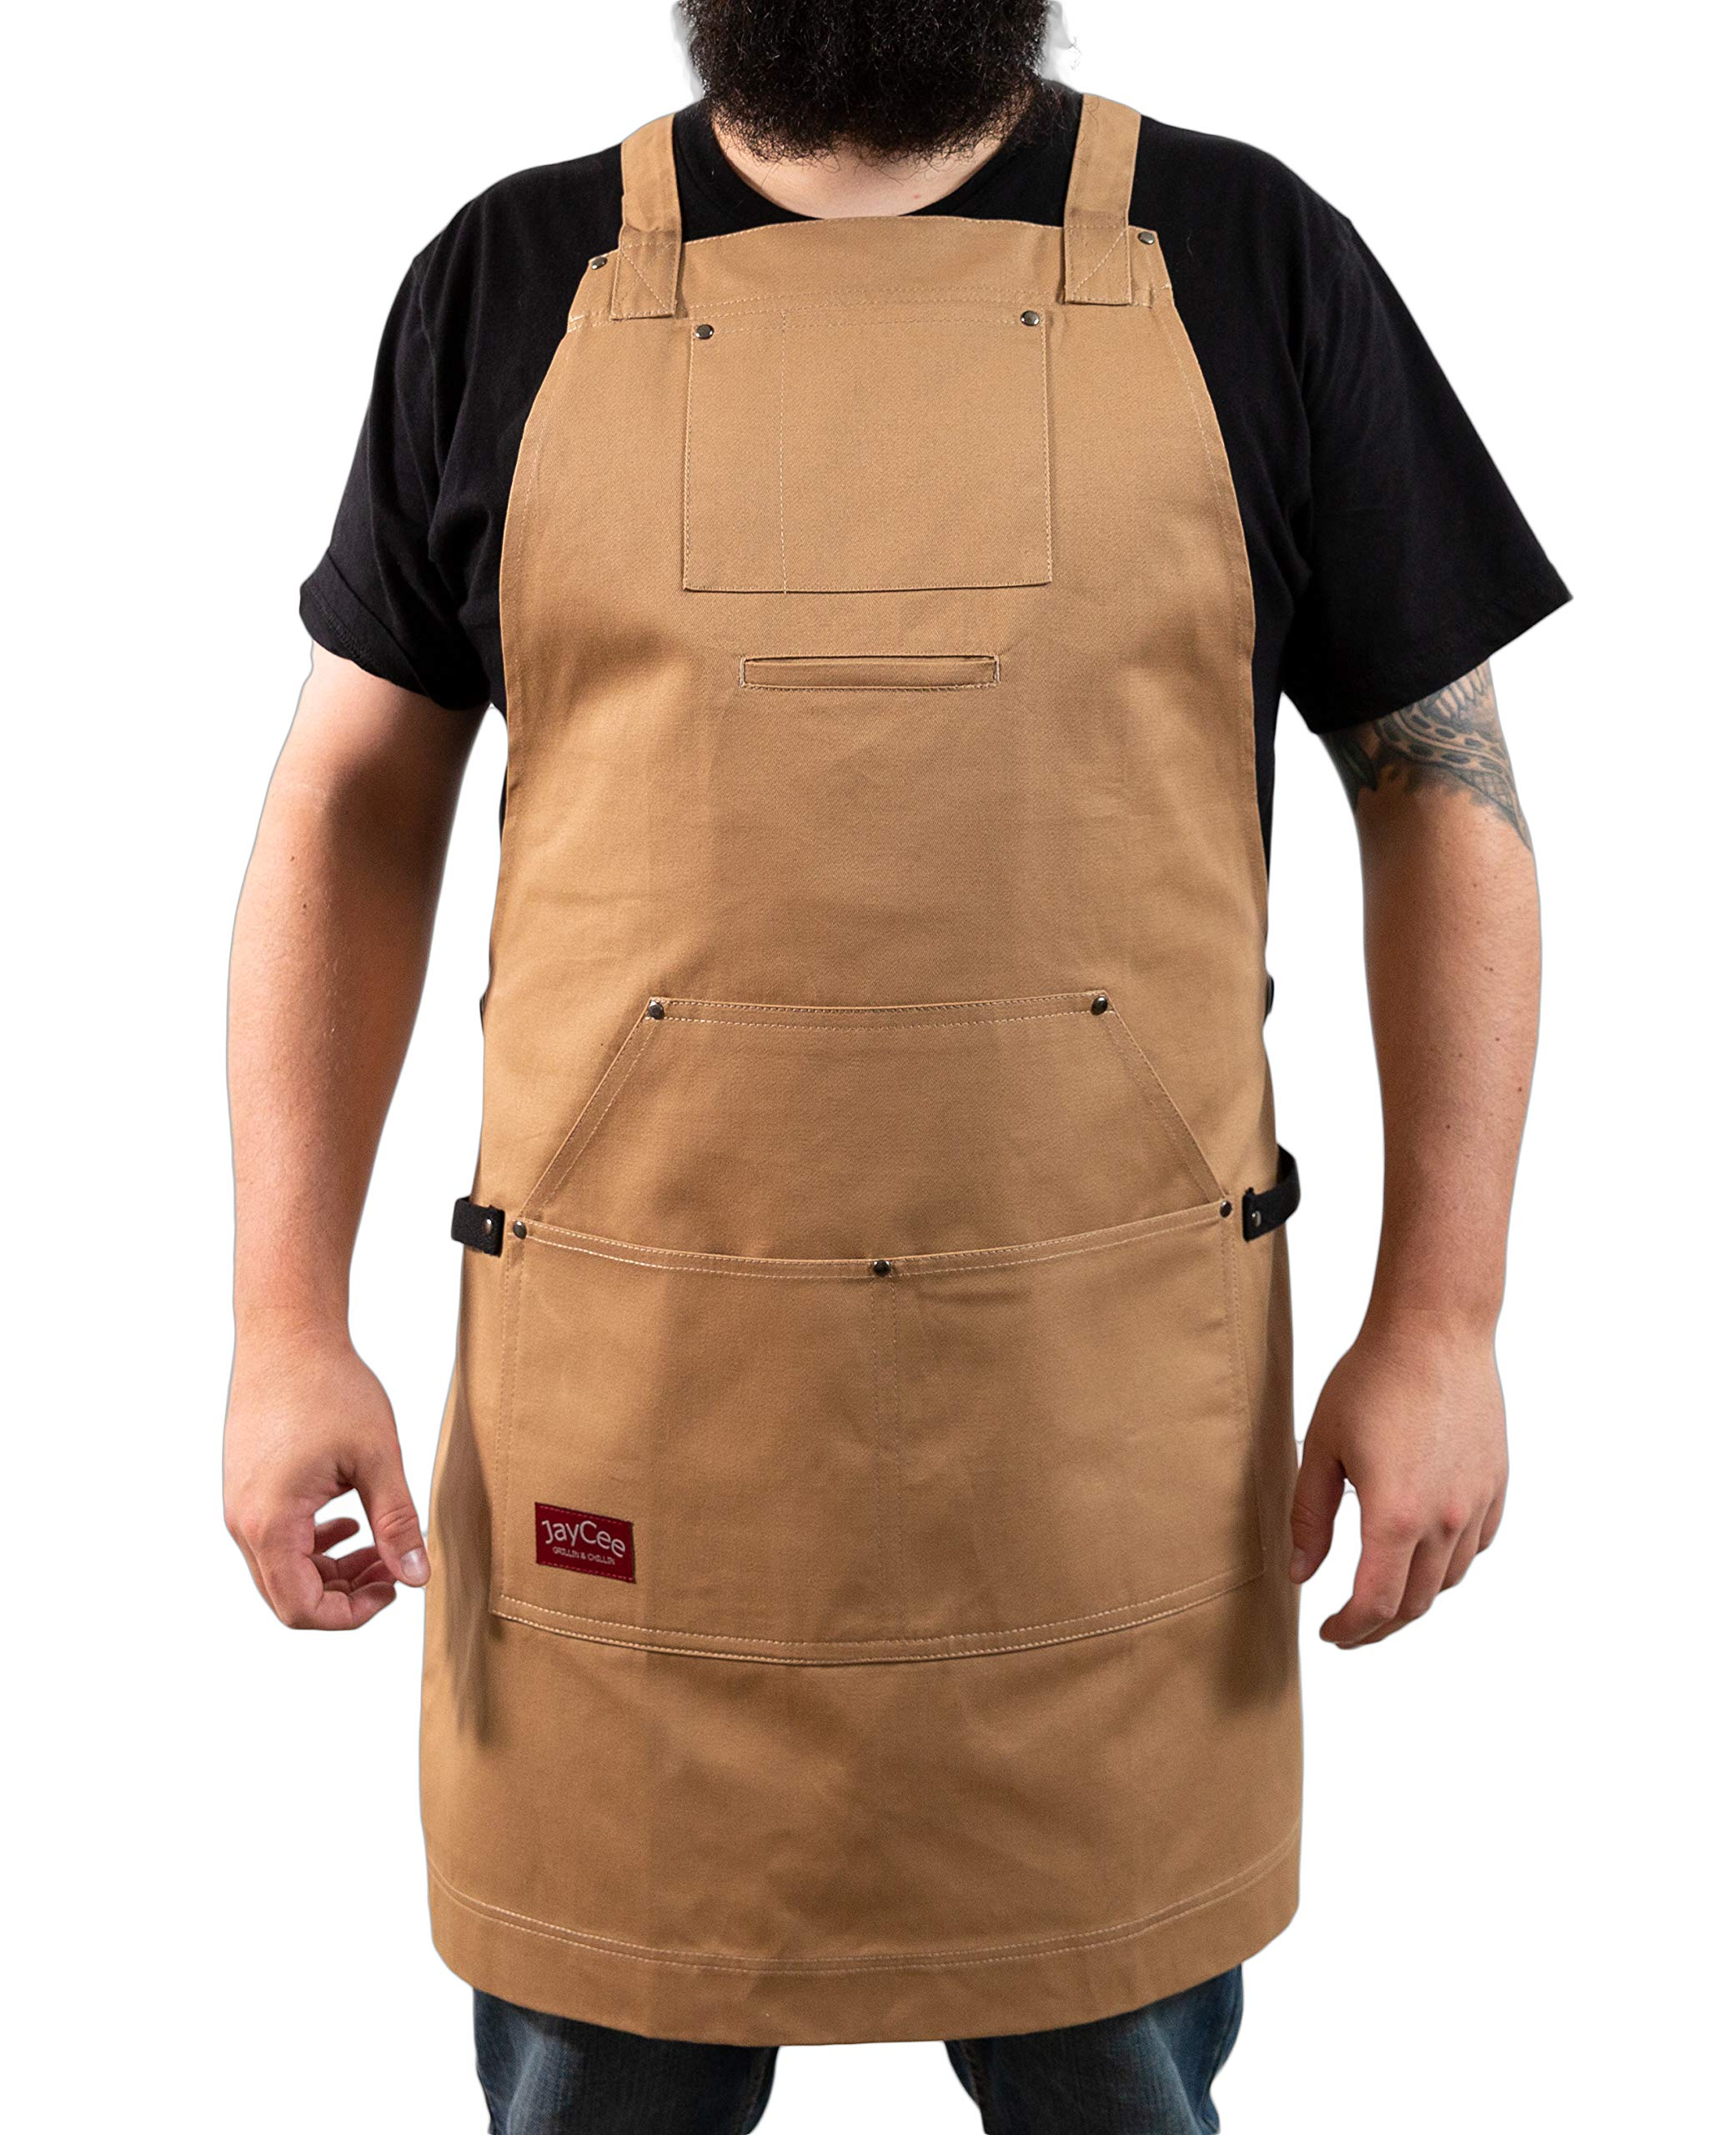 Jaycee Grillin & Chillin Apron for BBQ, Grill, Chef, Work and Hobby, 5 Pockets-1 Hoodie Style, Cross-Back Design, Quick Release Buckle, 2 Towel/Tool Loops. Comfortable 10 oz. Cotton. tan Brown